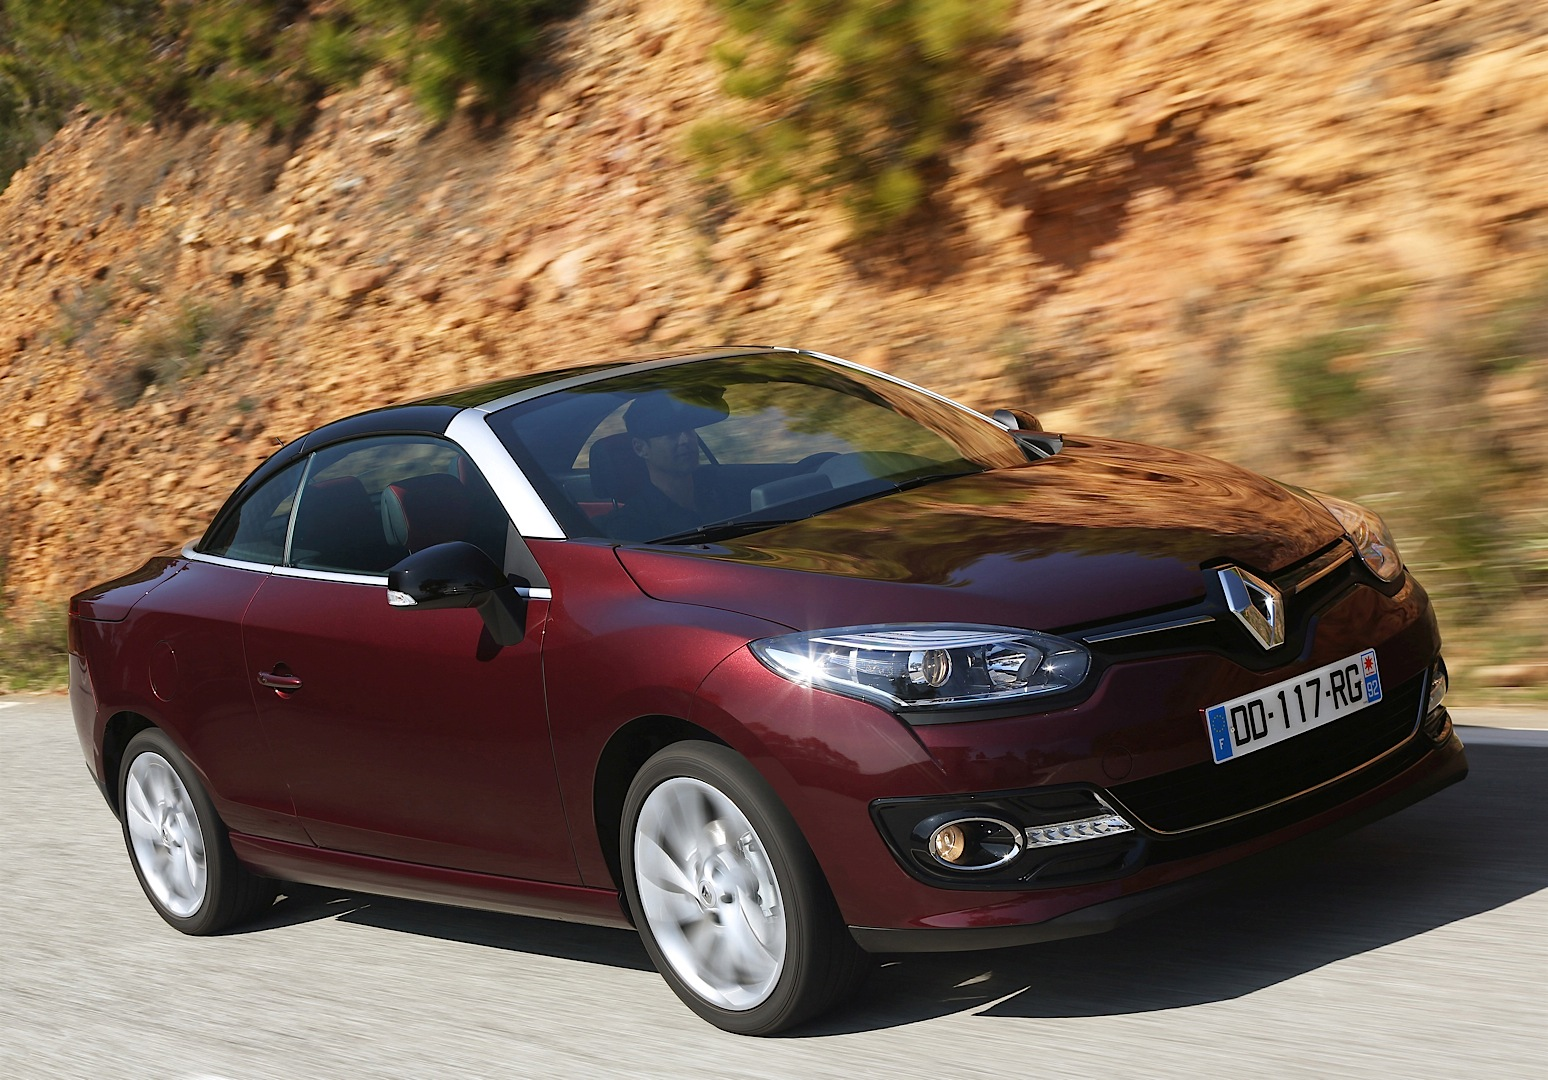 renault launched megane cc facelift and 1 2 turbo with 130. Black Bedroom Furniture Sets. Home Design Ideas